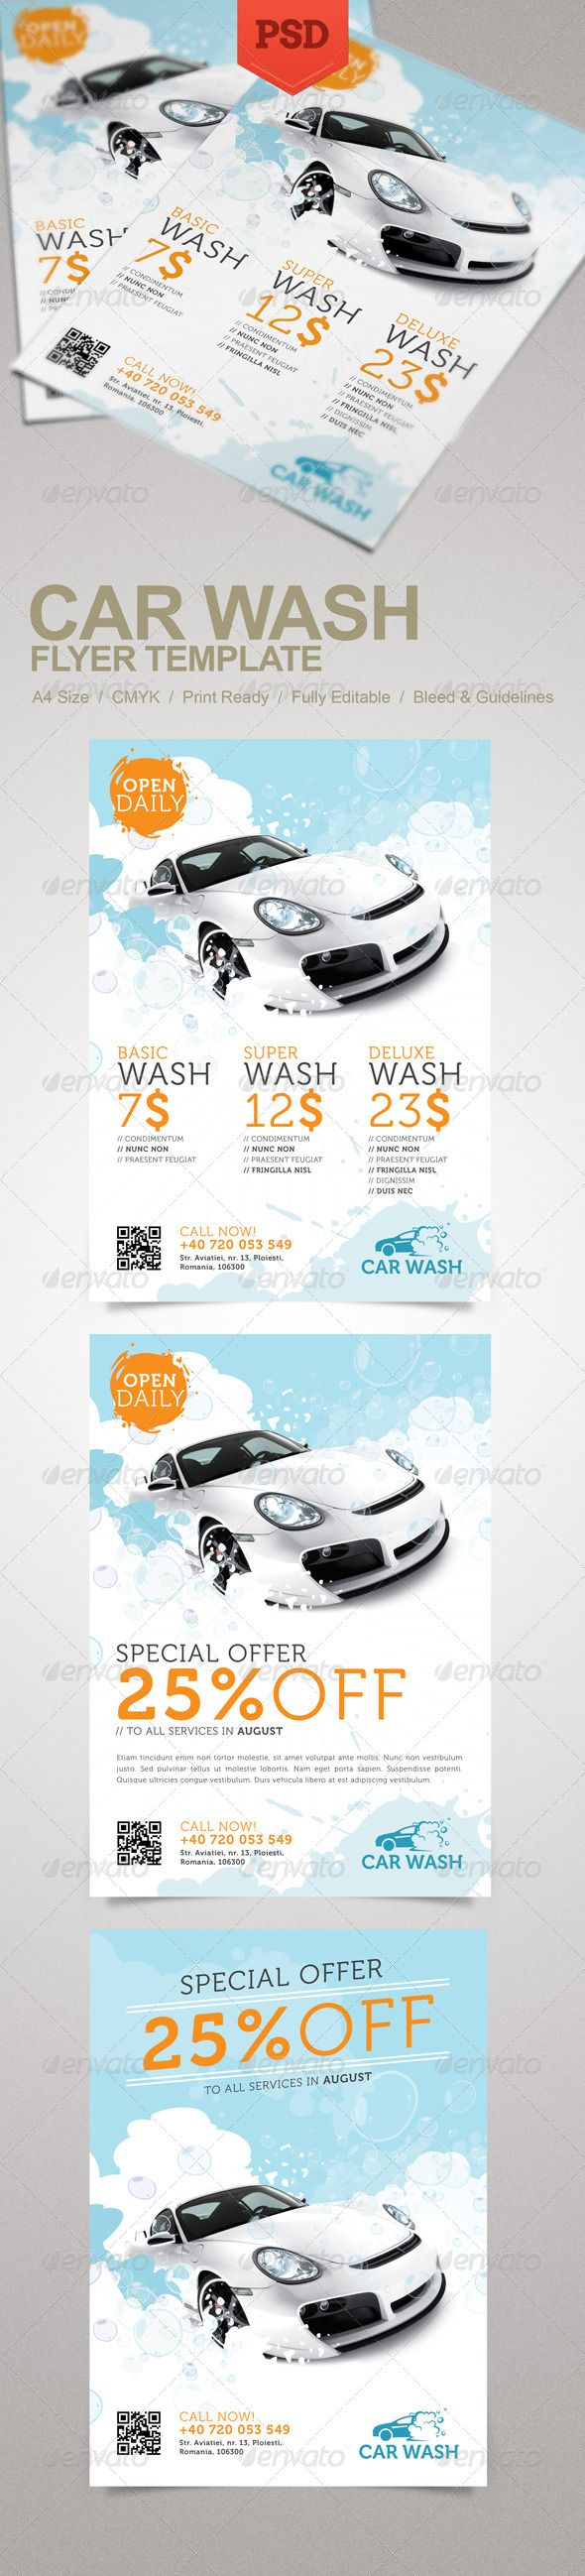 car wash flyer creative flyers car wash and flyer template. Black Bedroom Furniture Sets. Home Design Ideas